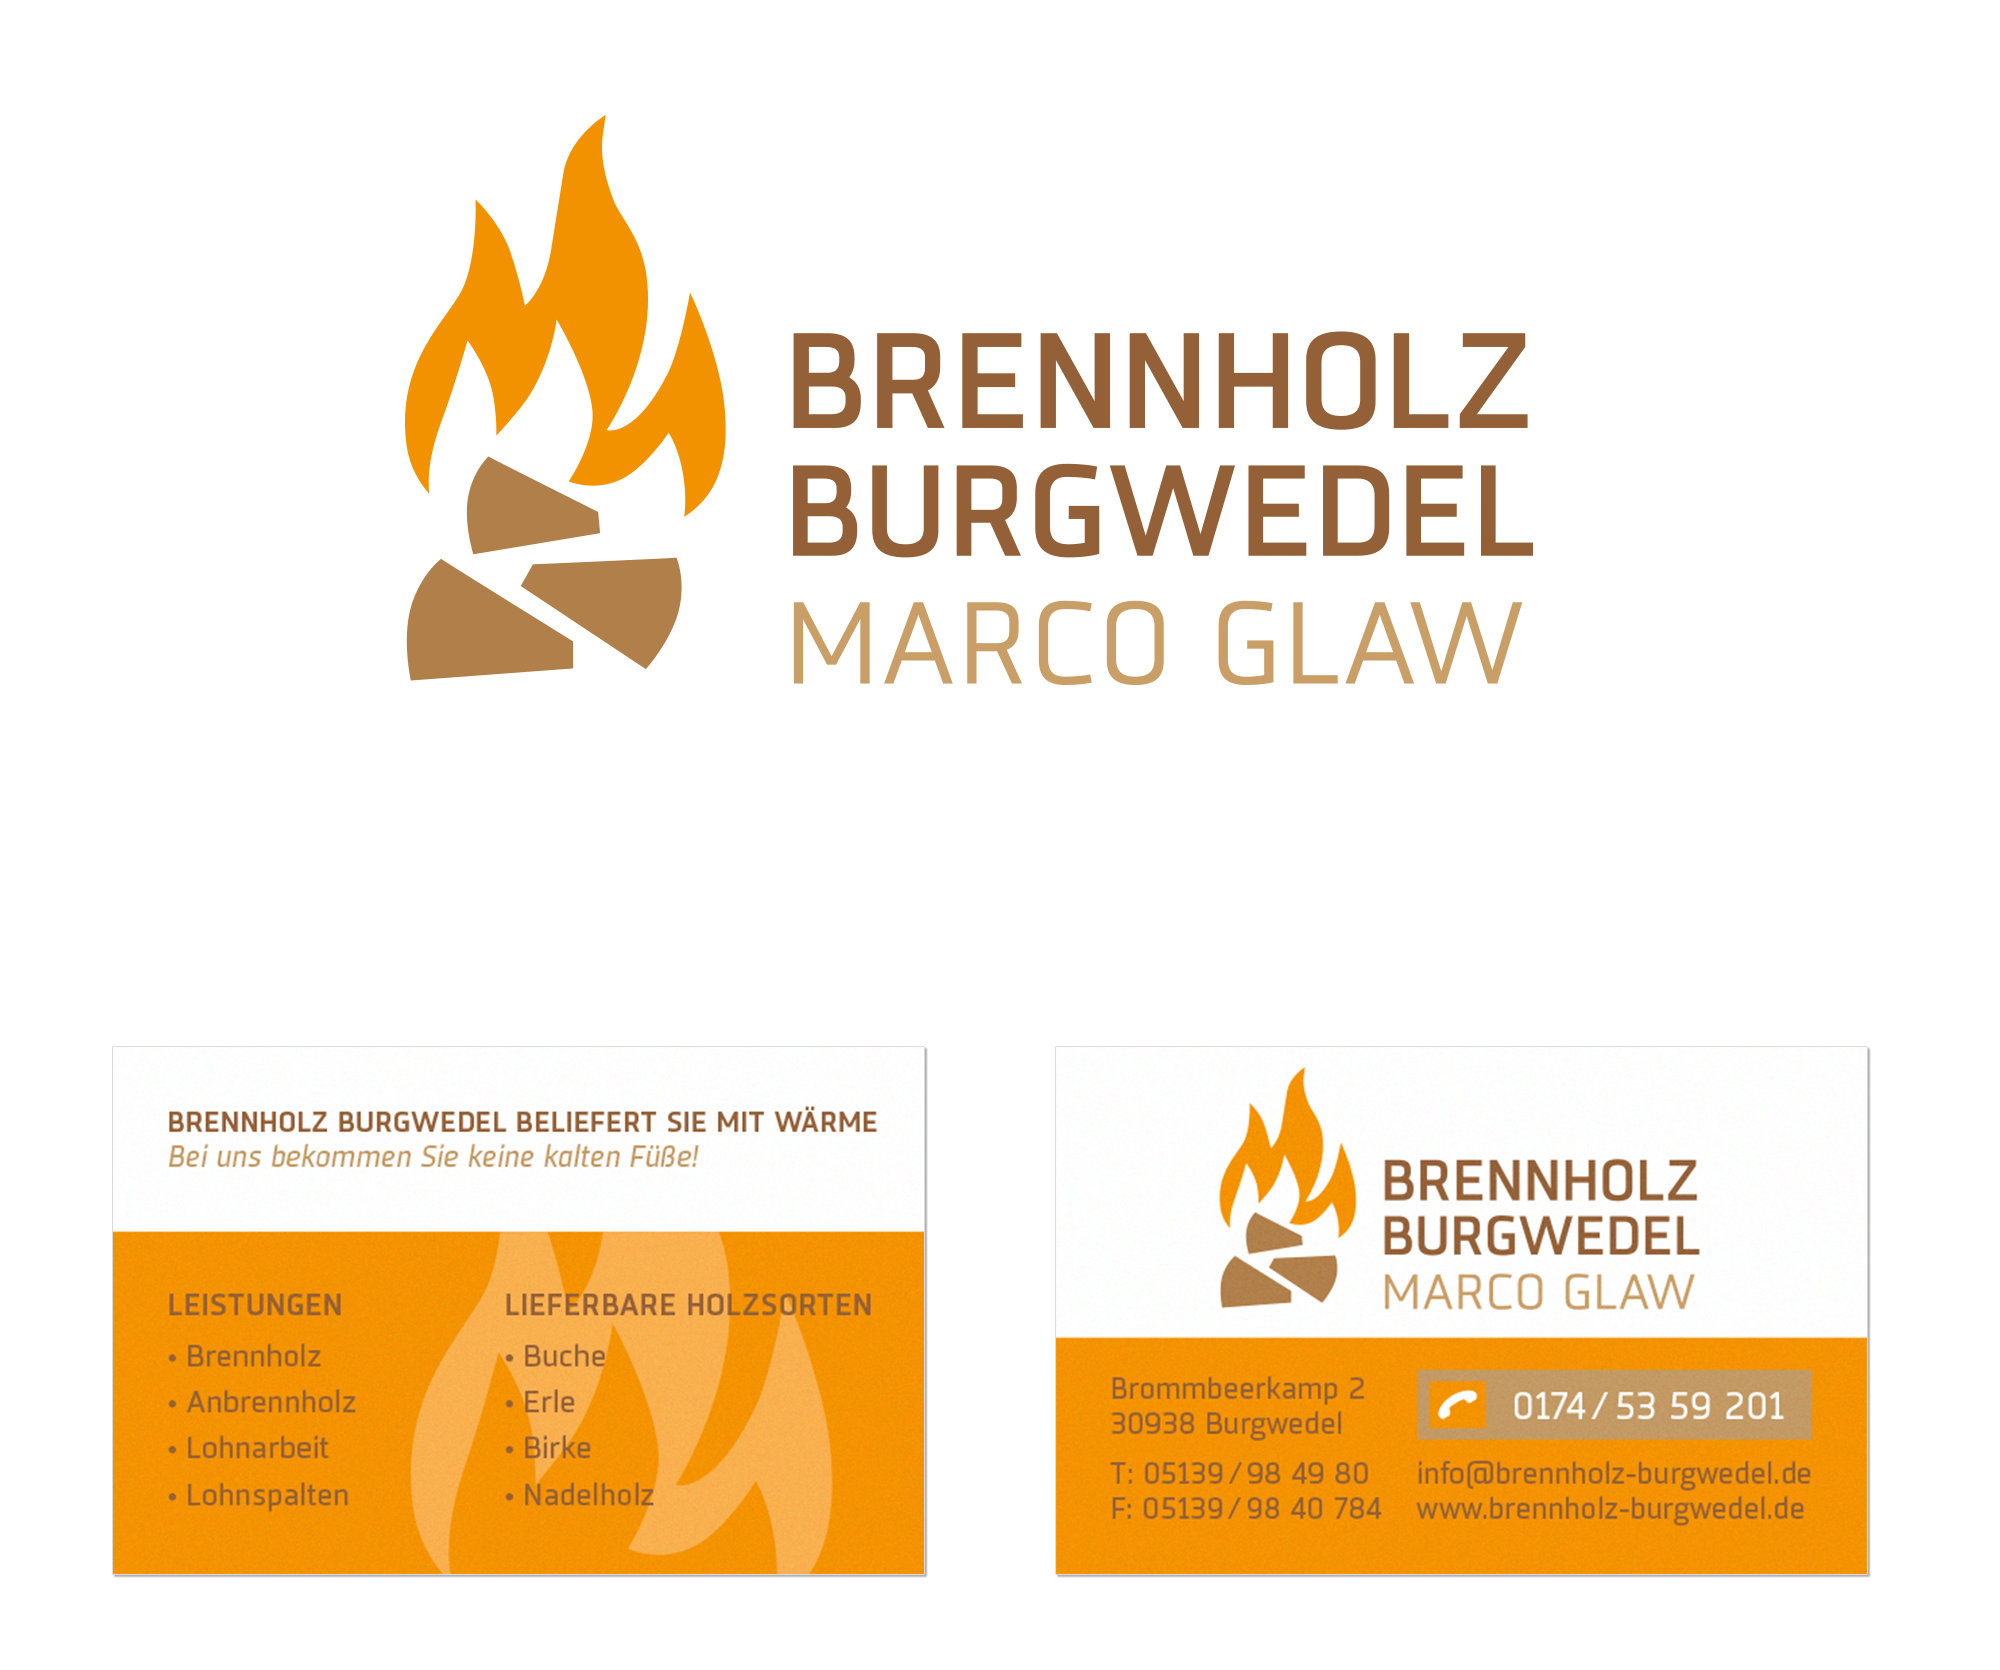 Brennholz Burgwedel Glaw | Corporate Design